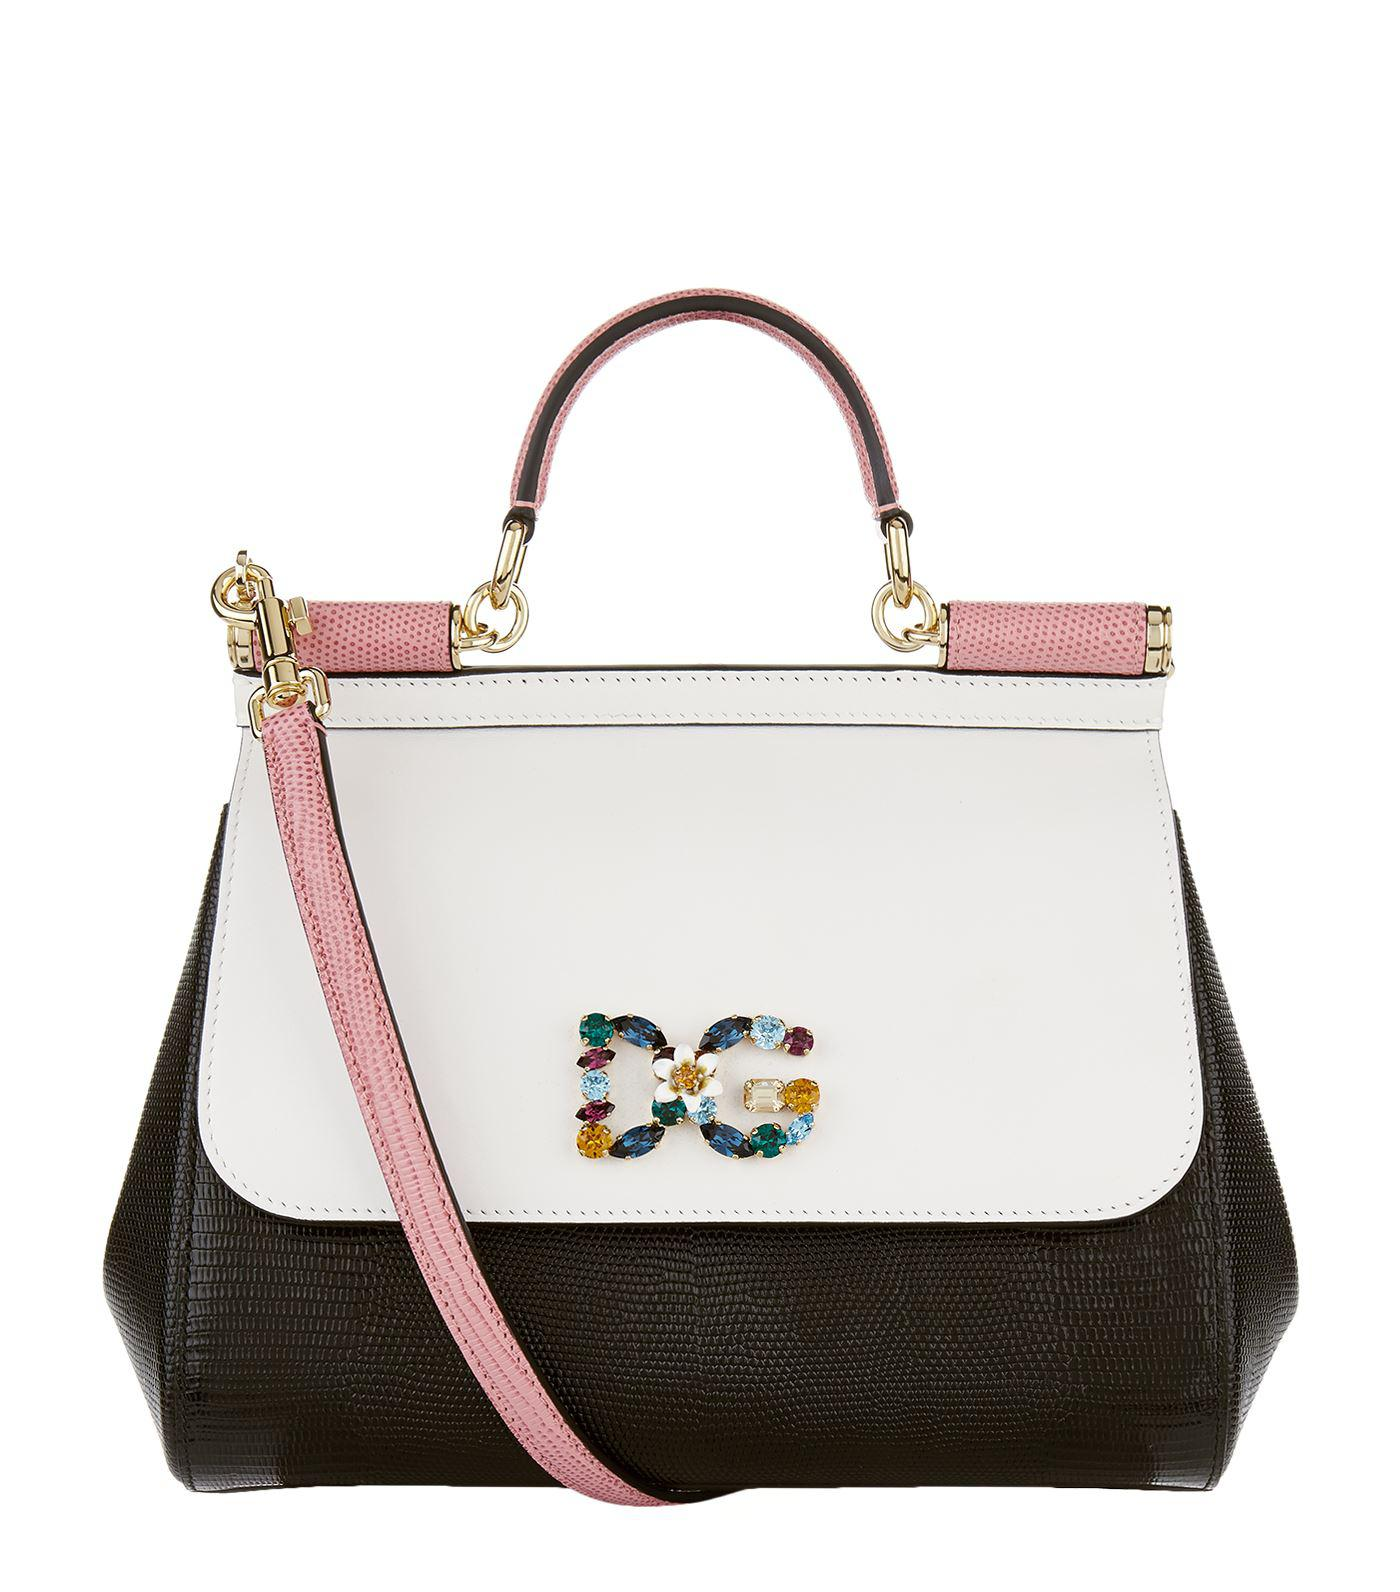 Lyst - Dolce   Gabbana Medium Sicily Top Handle Bag in White - Save ... 245d7abfdc